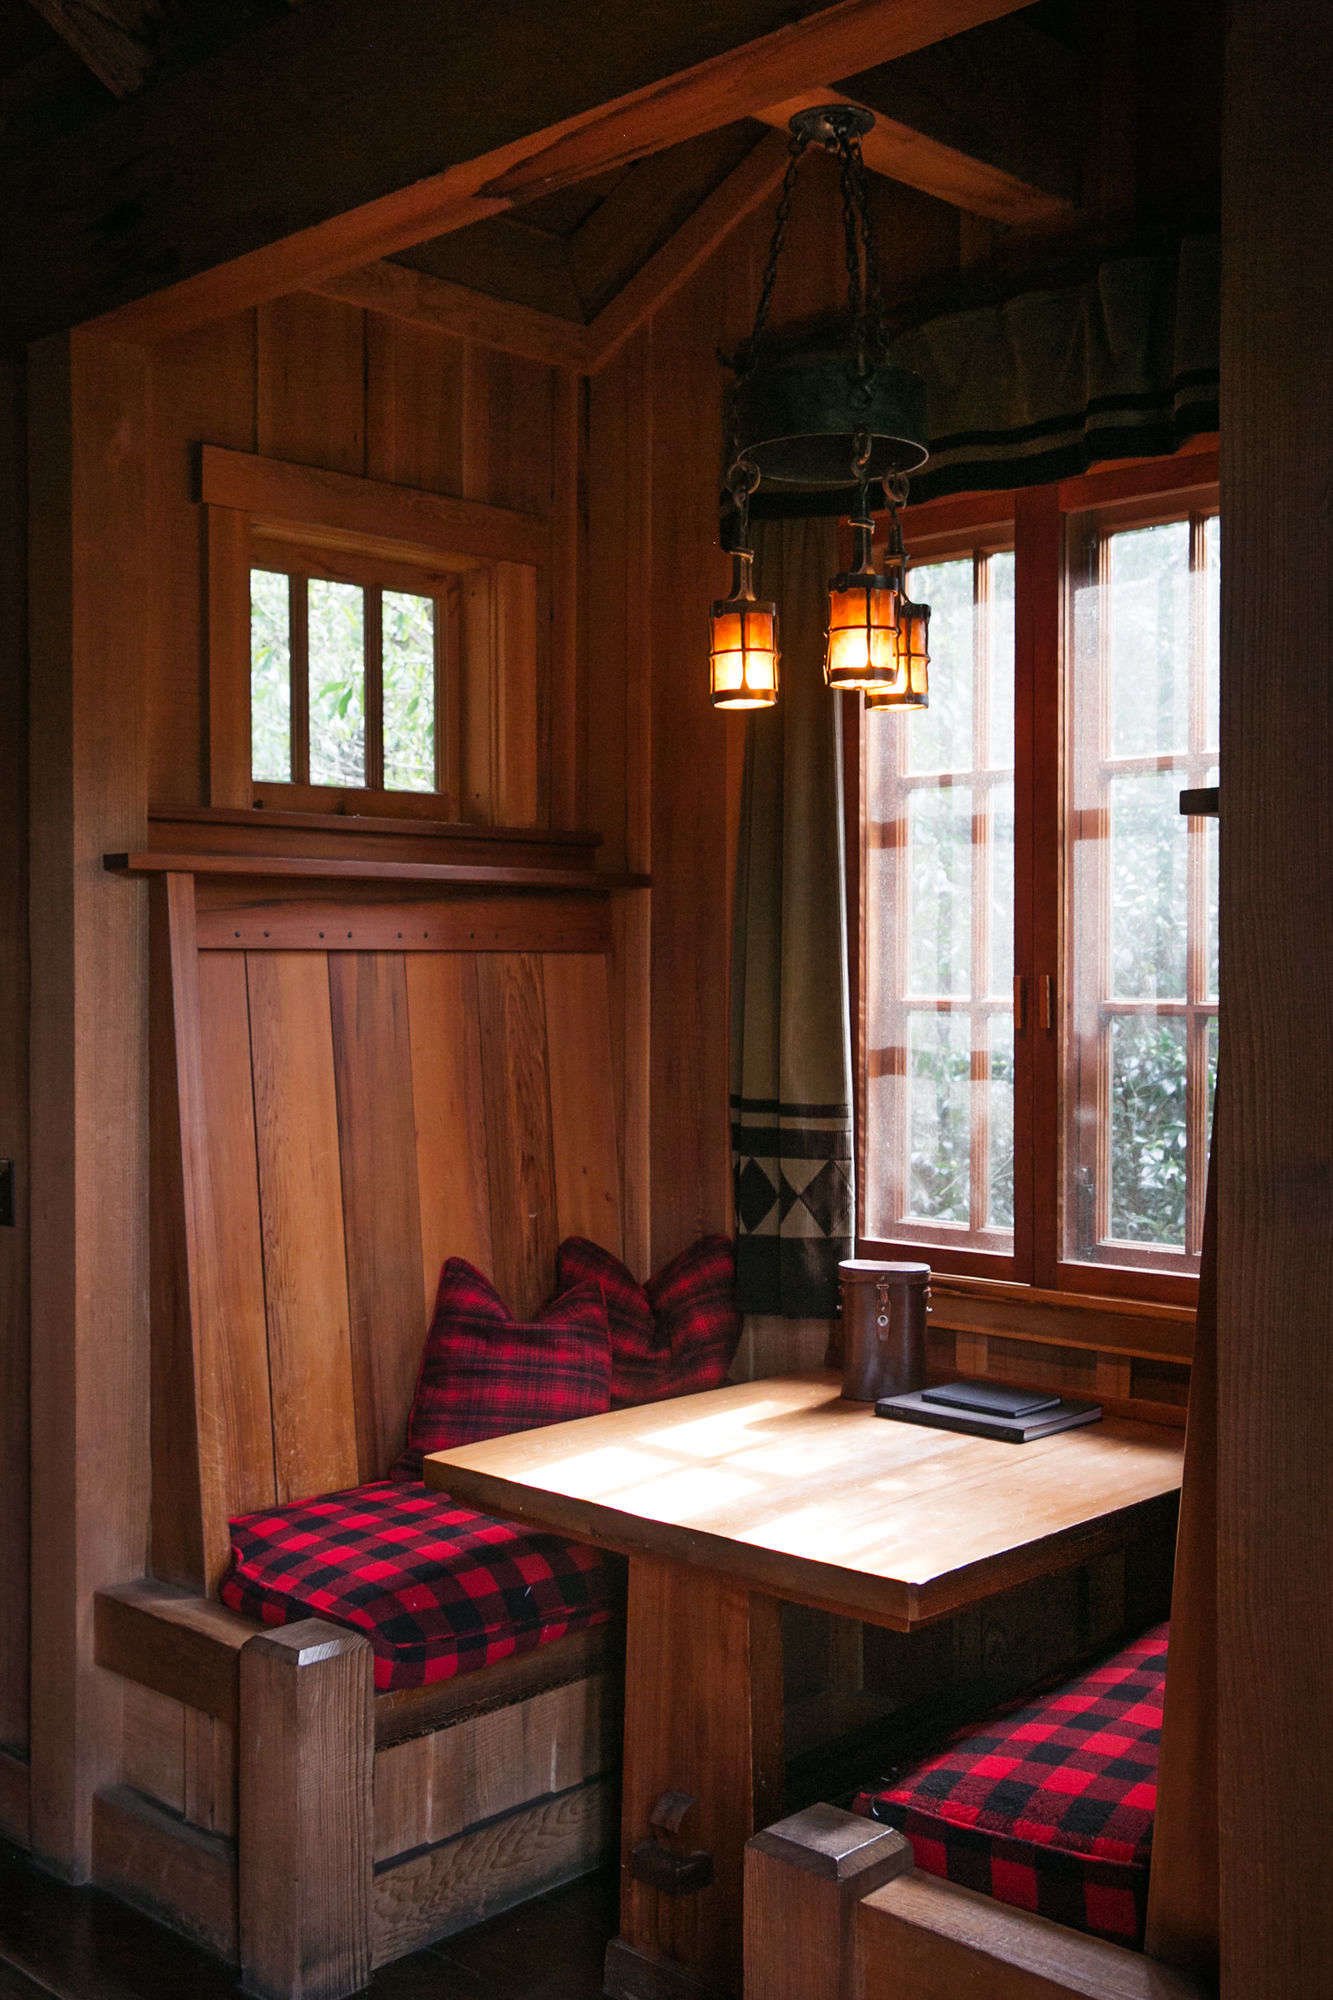 a table and banquettesare built into the back wall of the cabin. 17